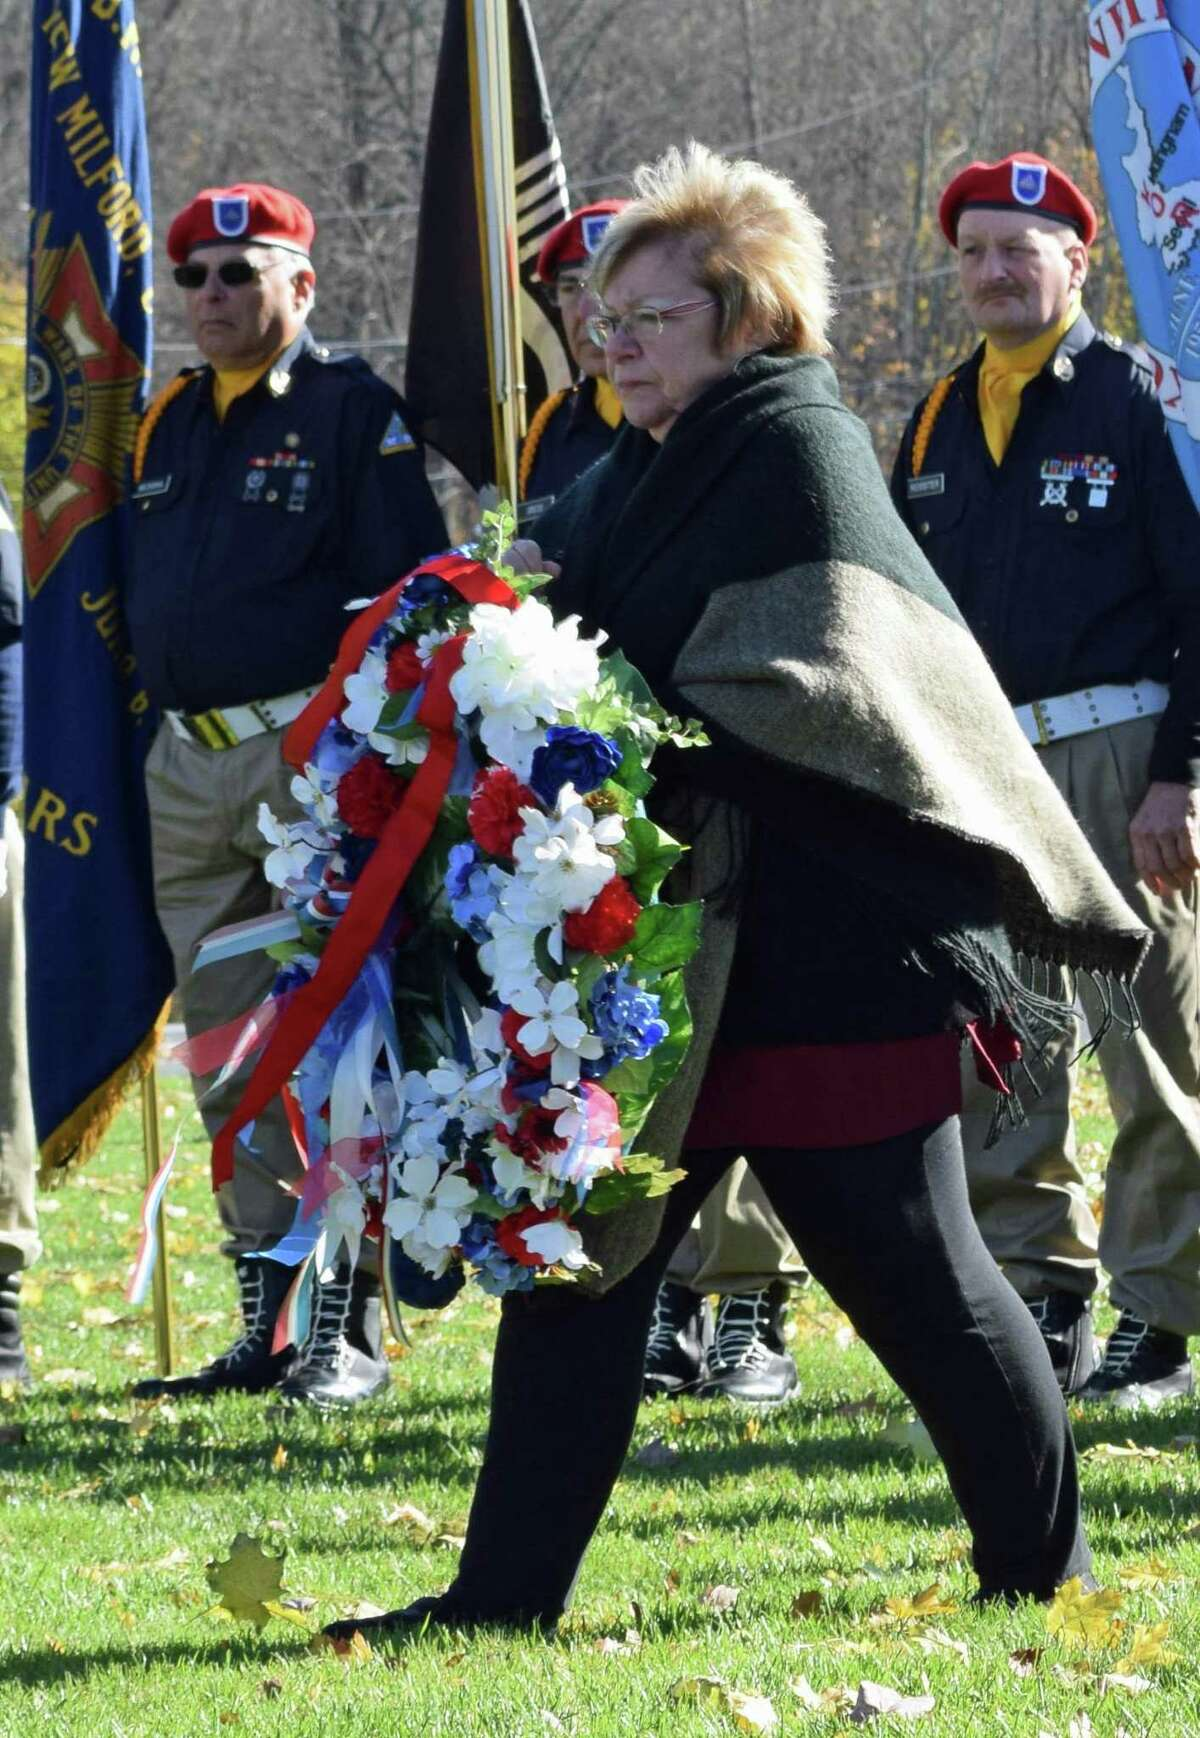 The Roger Sherman Chapter, Daughters of the American Revolution, which will hold a special program at Harrybrooke Park in New Milford April 6, supports programs for veterans and children, promotes historic preservation and provides educational opportunities. Above, chapter regent Bonnie Butler presents a wreath on Veterans Day 2018.